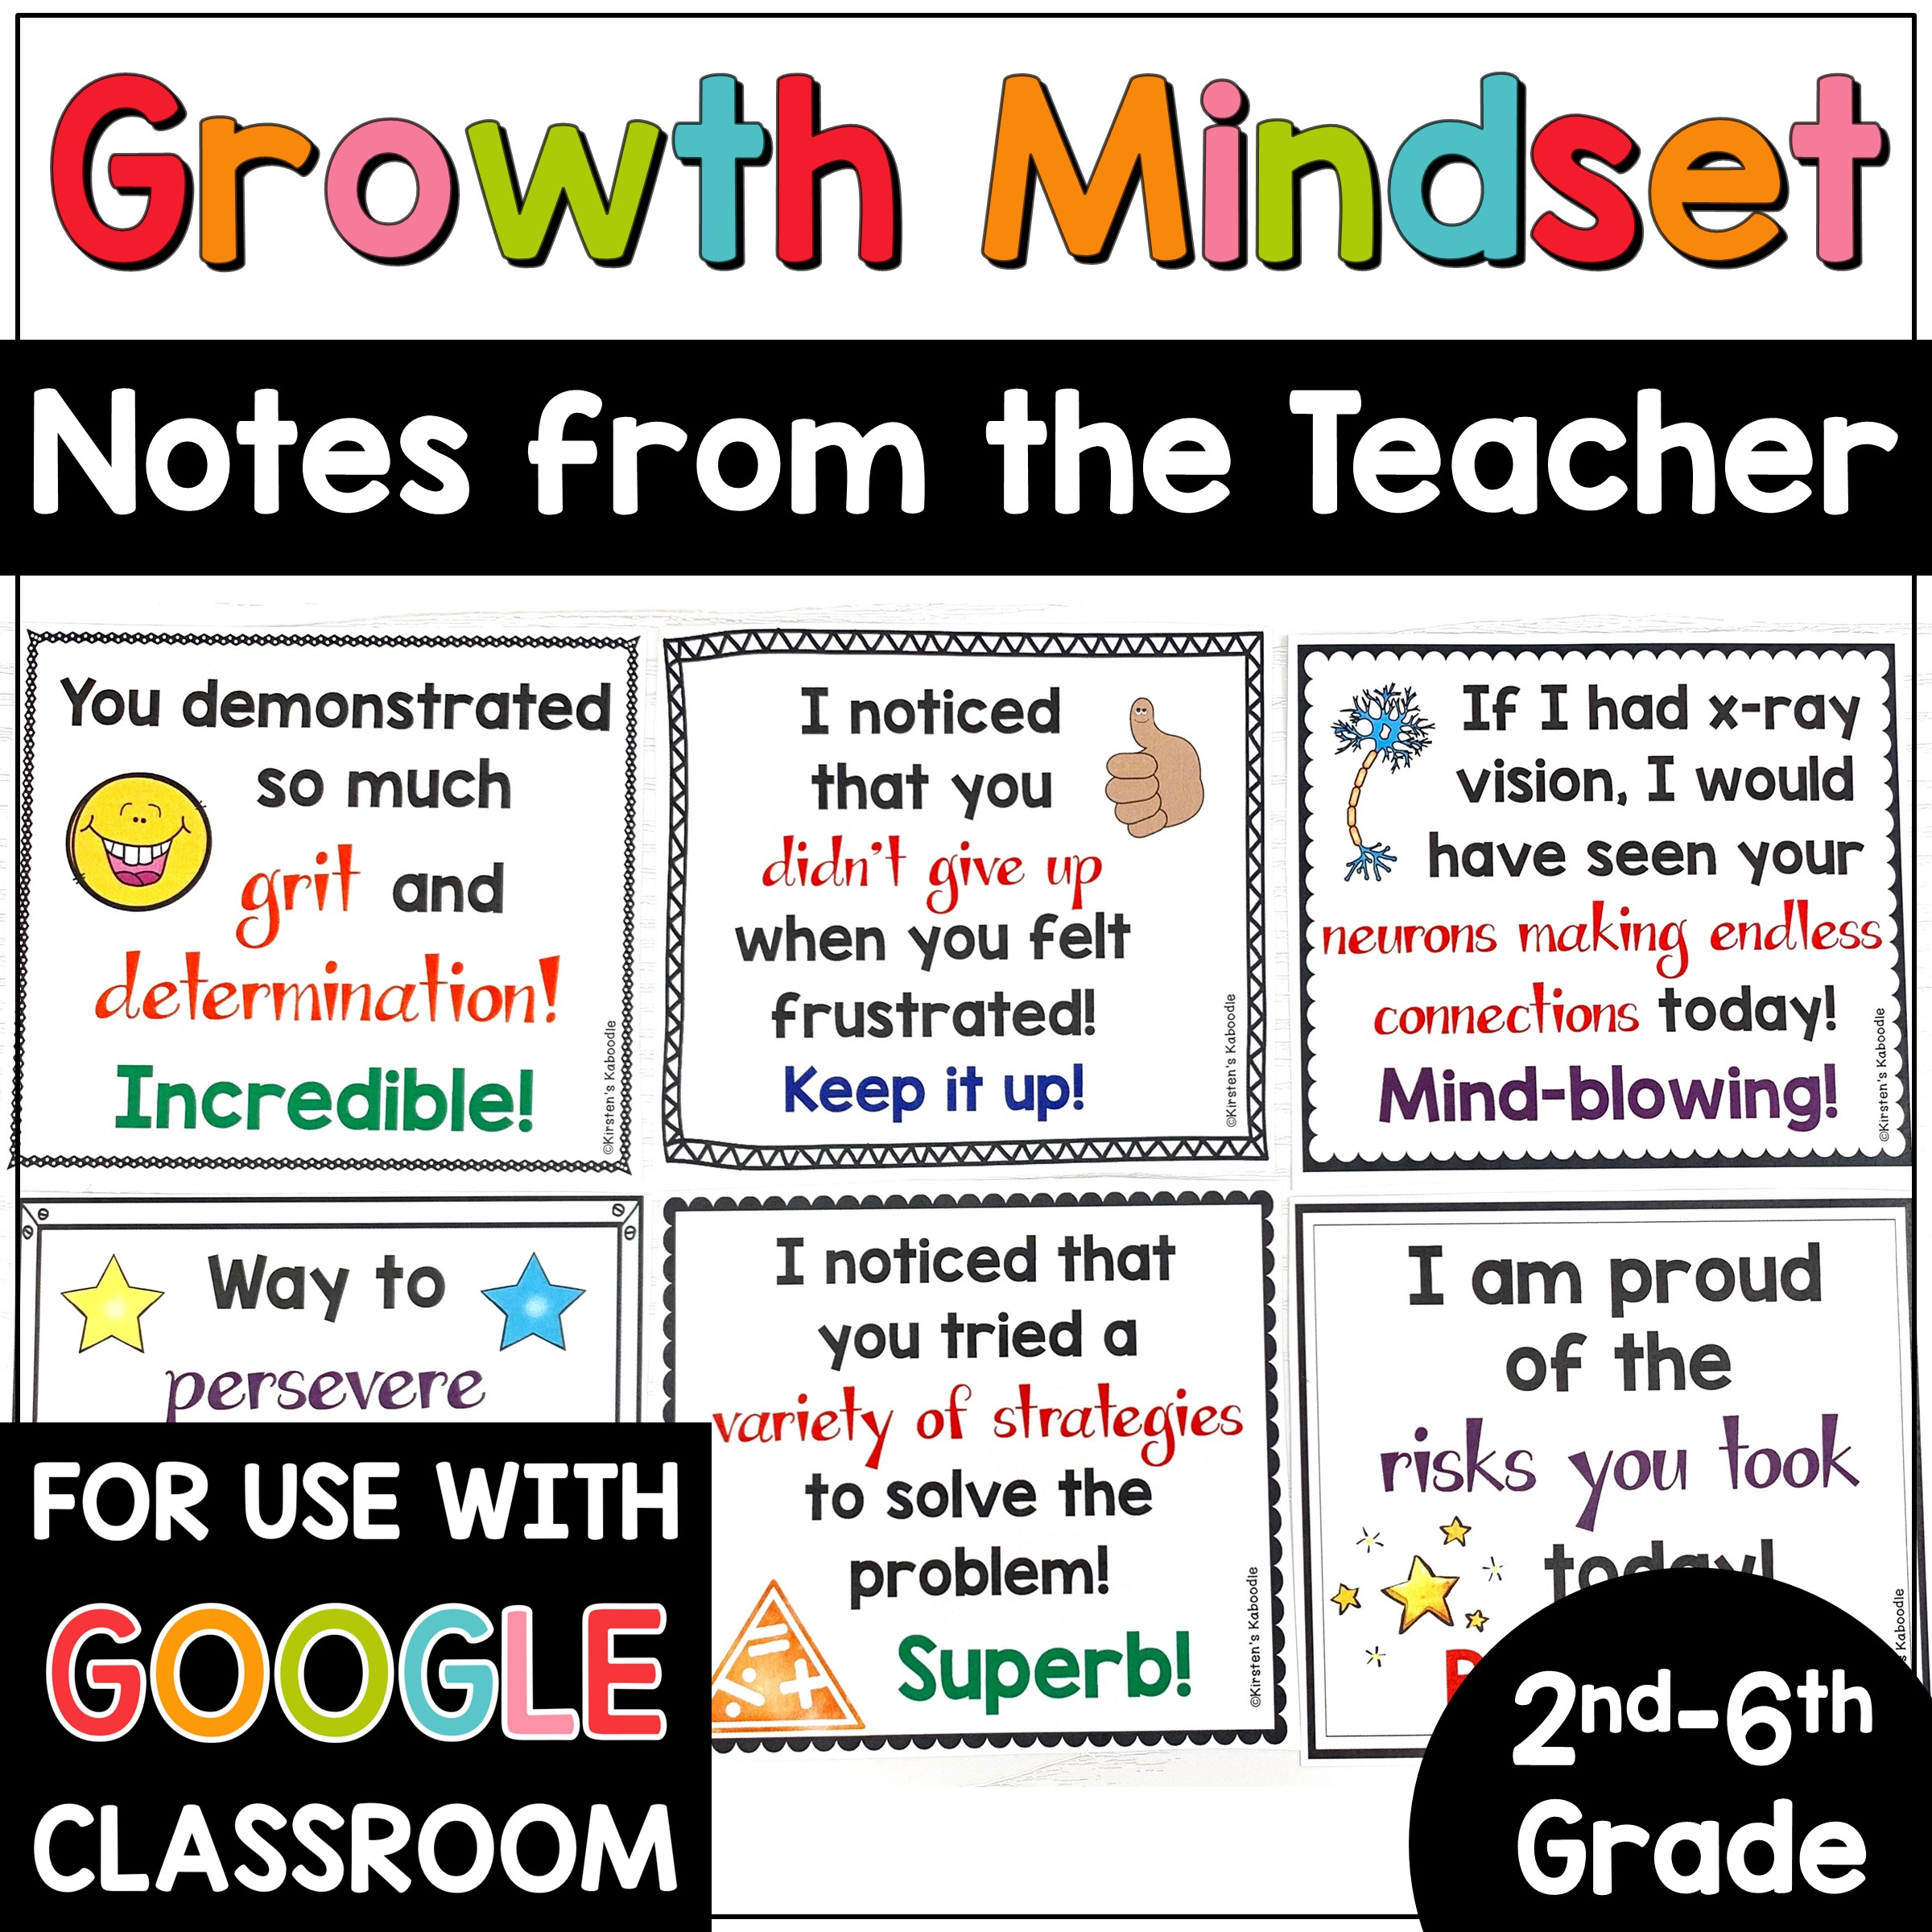 growth-mindset-notes-from-the-teacher